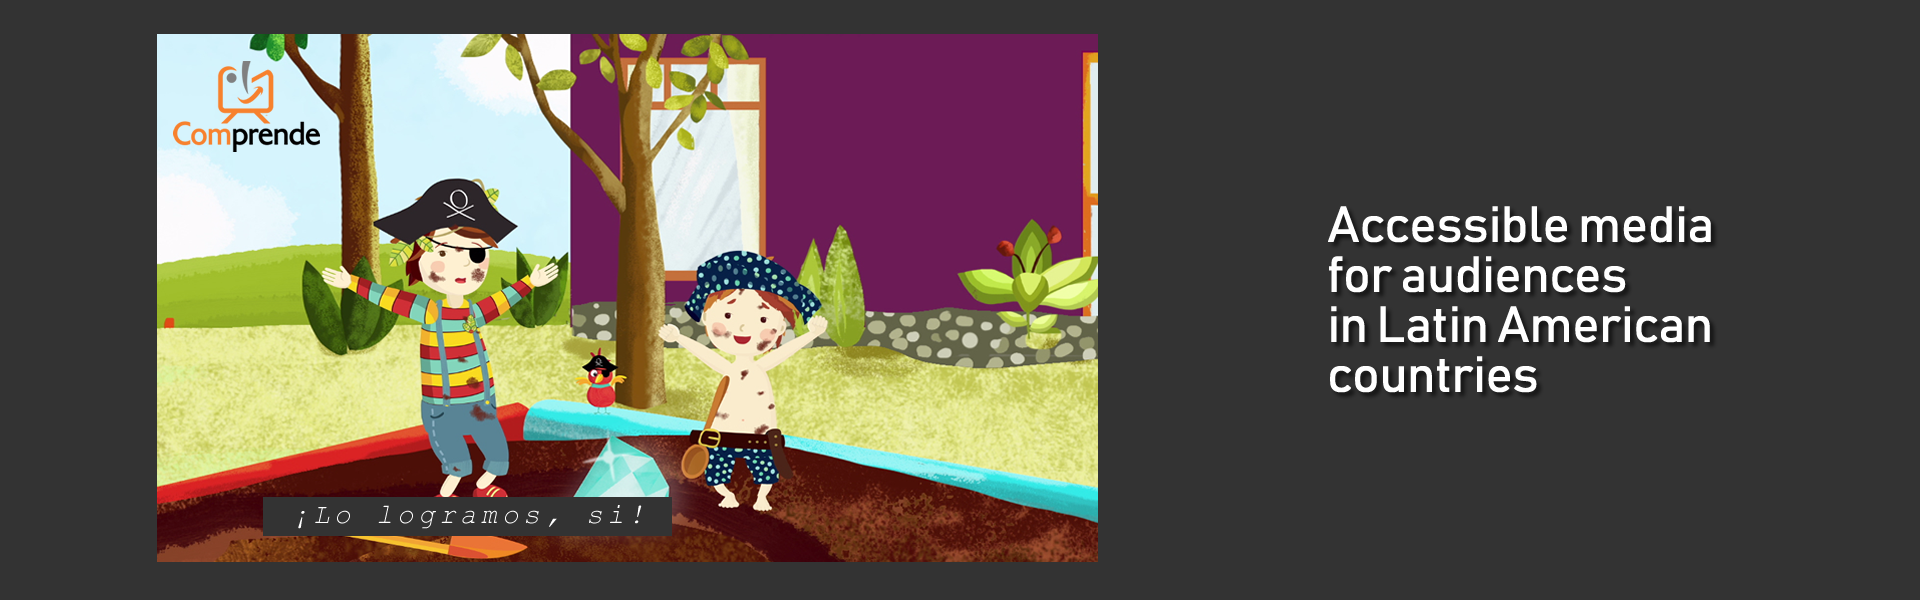 Image of an animated series. 2 children in pirate outfit stand on a sandbox. A shovel is on the ground, the kids rise their arms and look at a large diamond. Caption: ¡Lo logramos, si! Text next to the image: accessible media for audiences in Latin American countries.